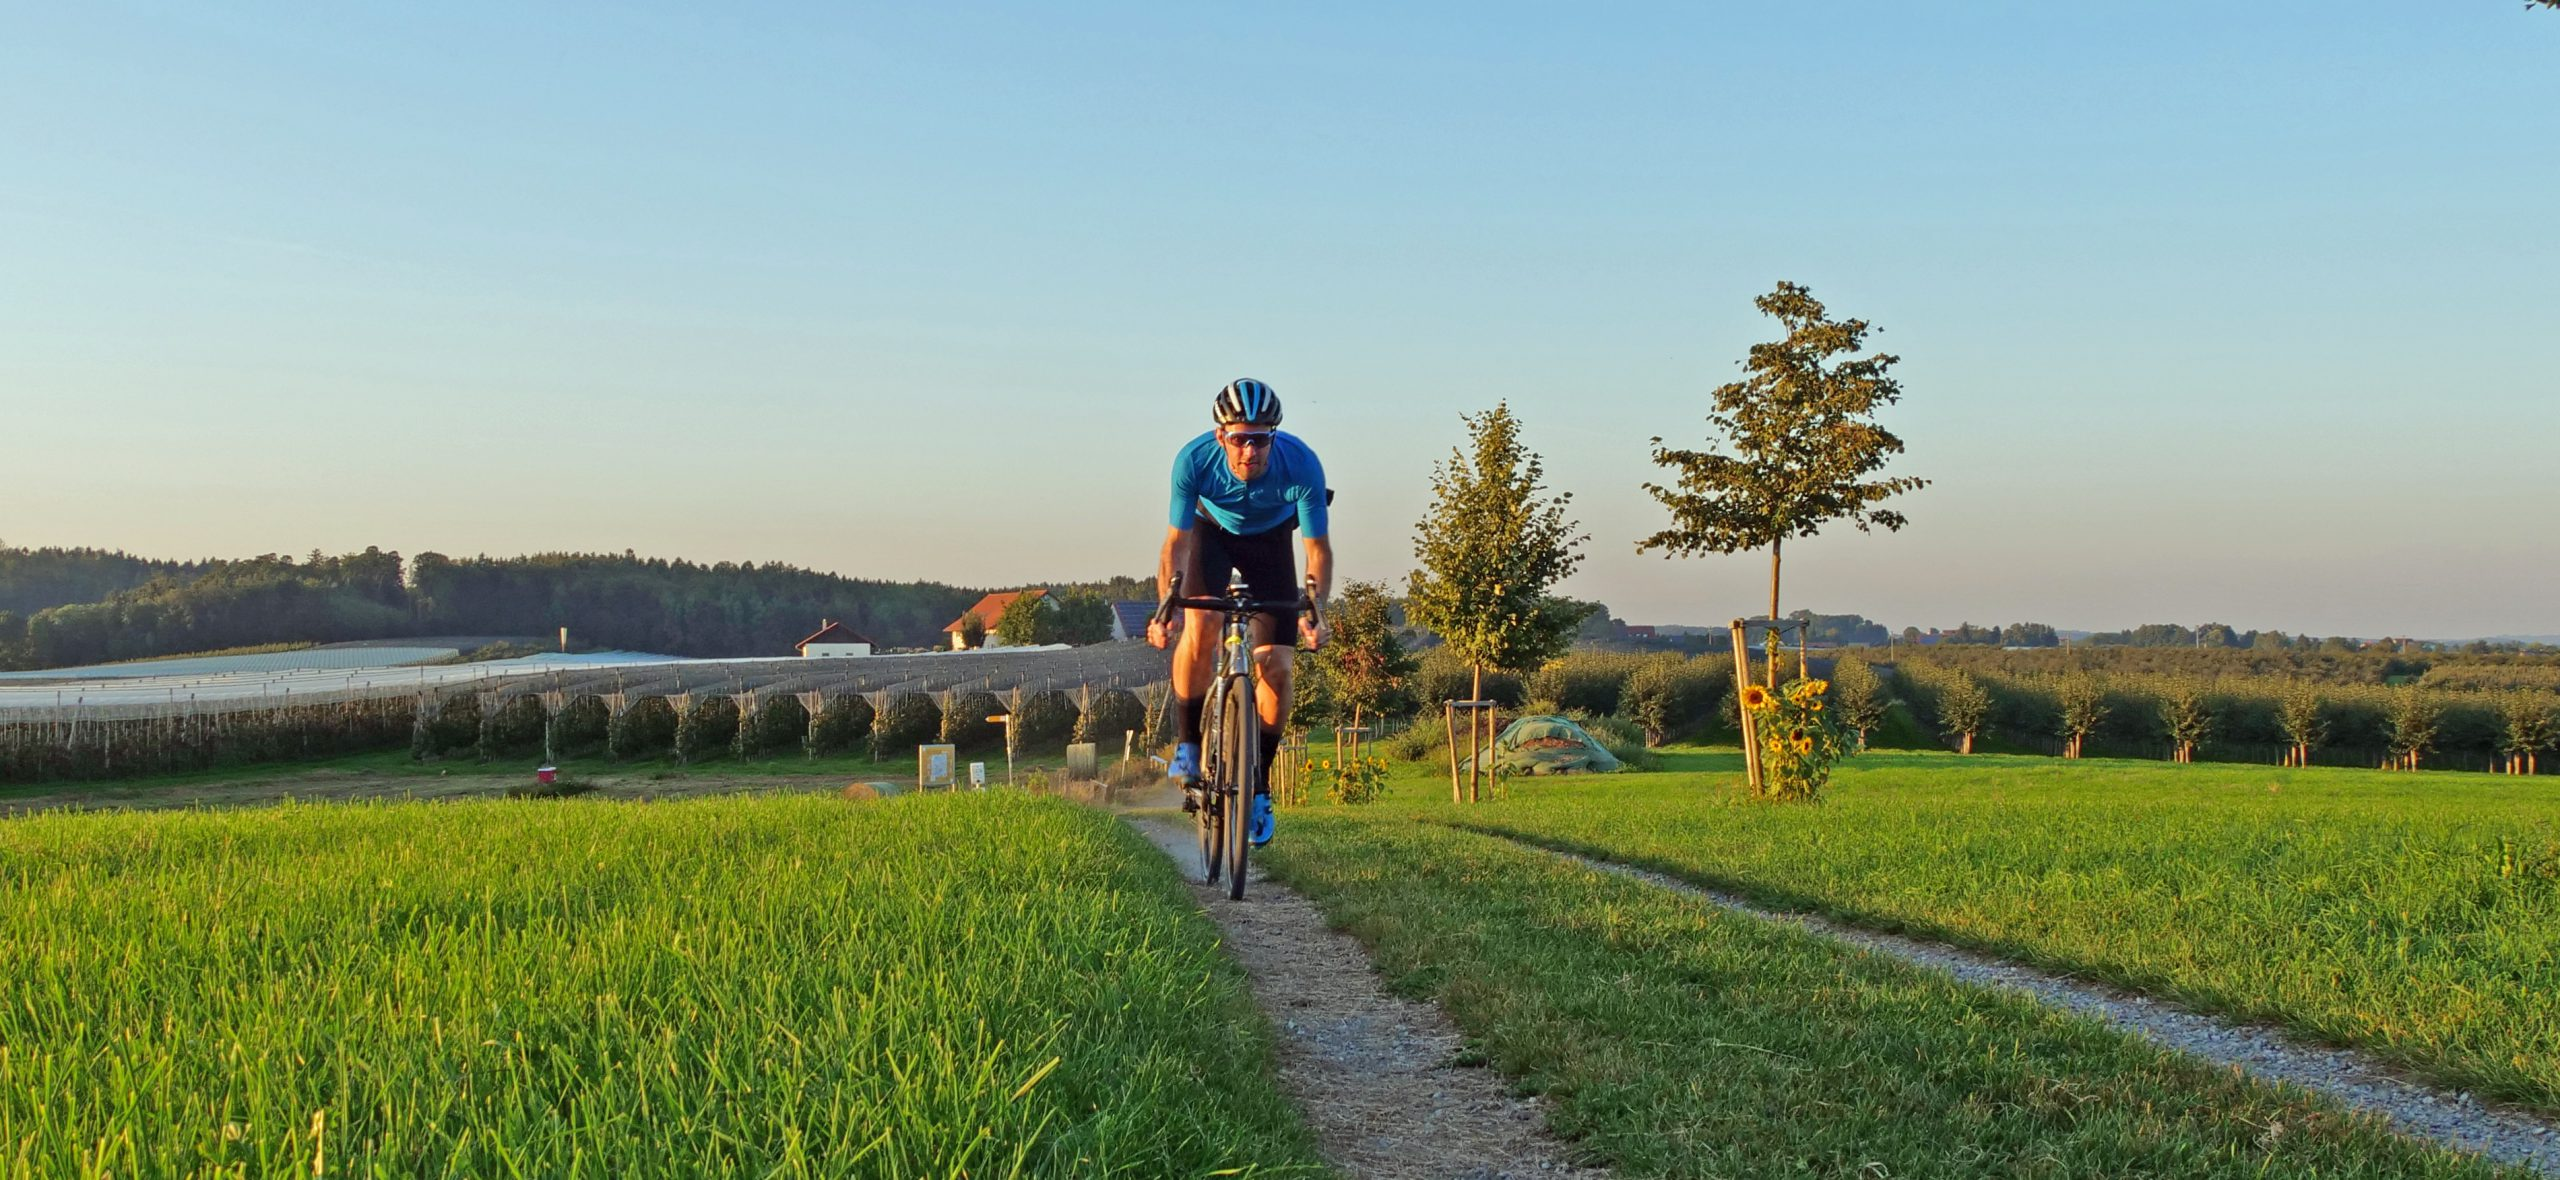 Gravel cyclist riding in a sunny landscape